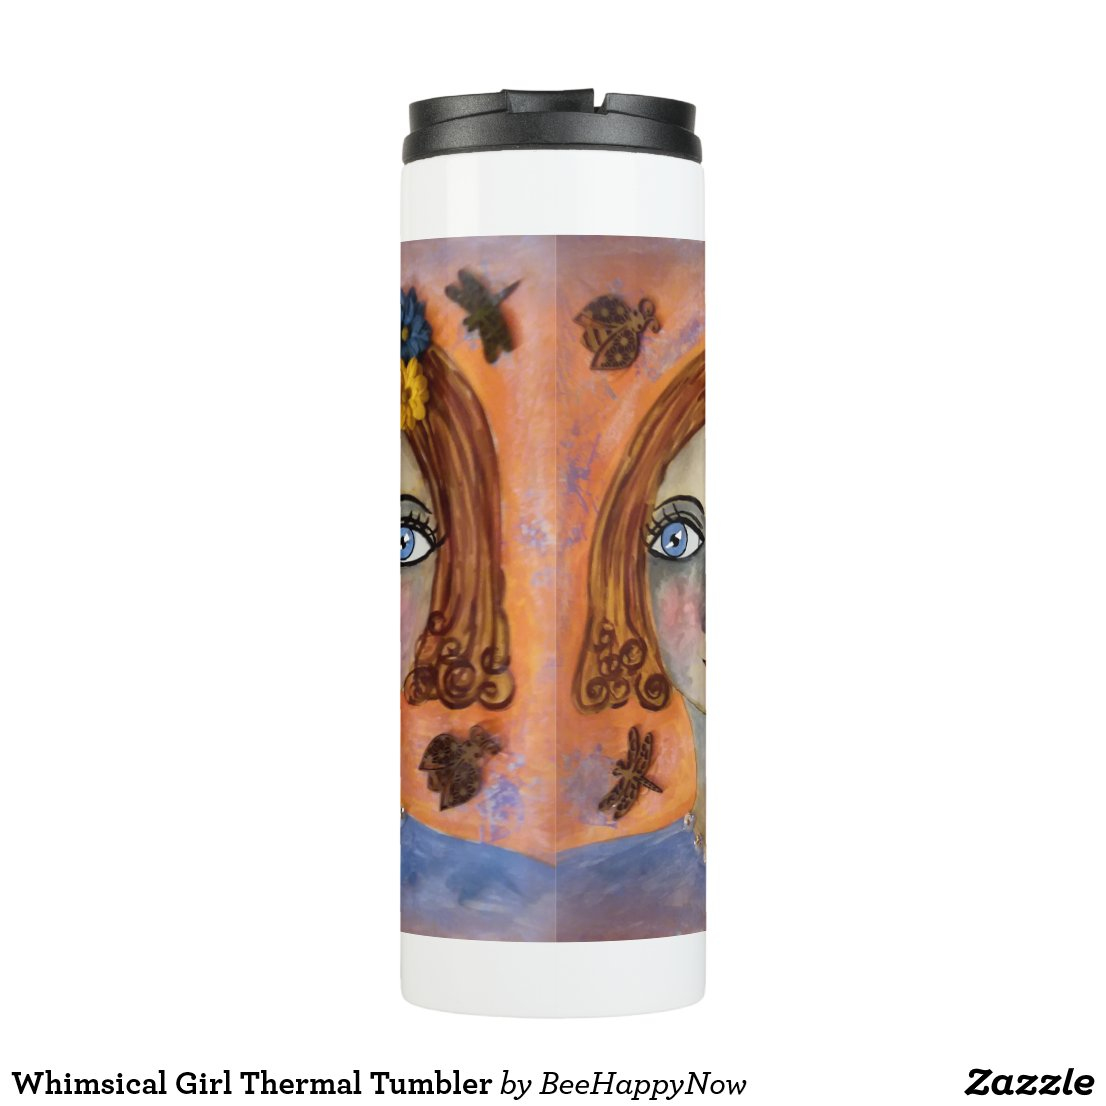 Whimsical Girl Thermal Tumbler